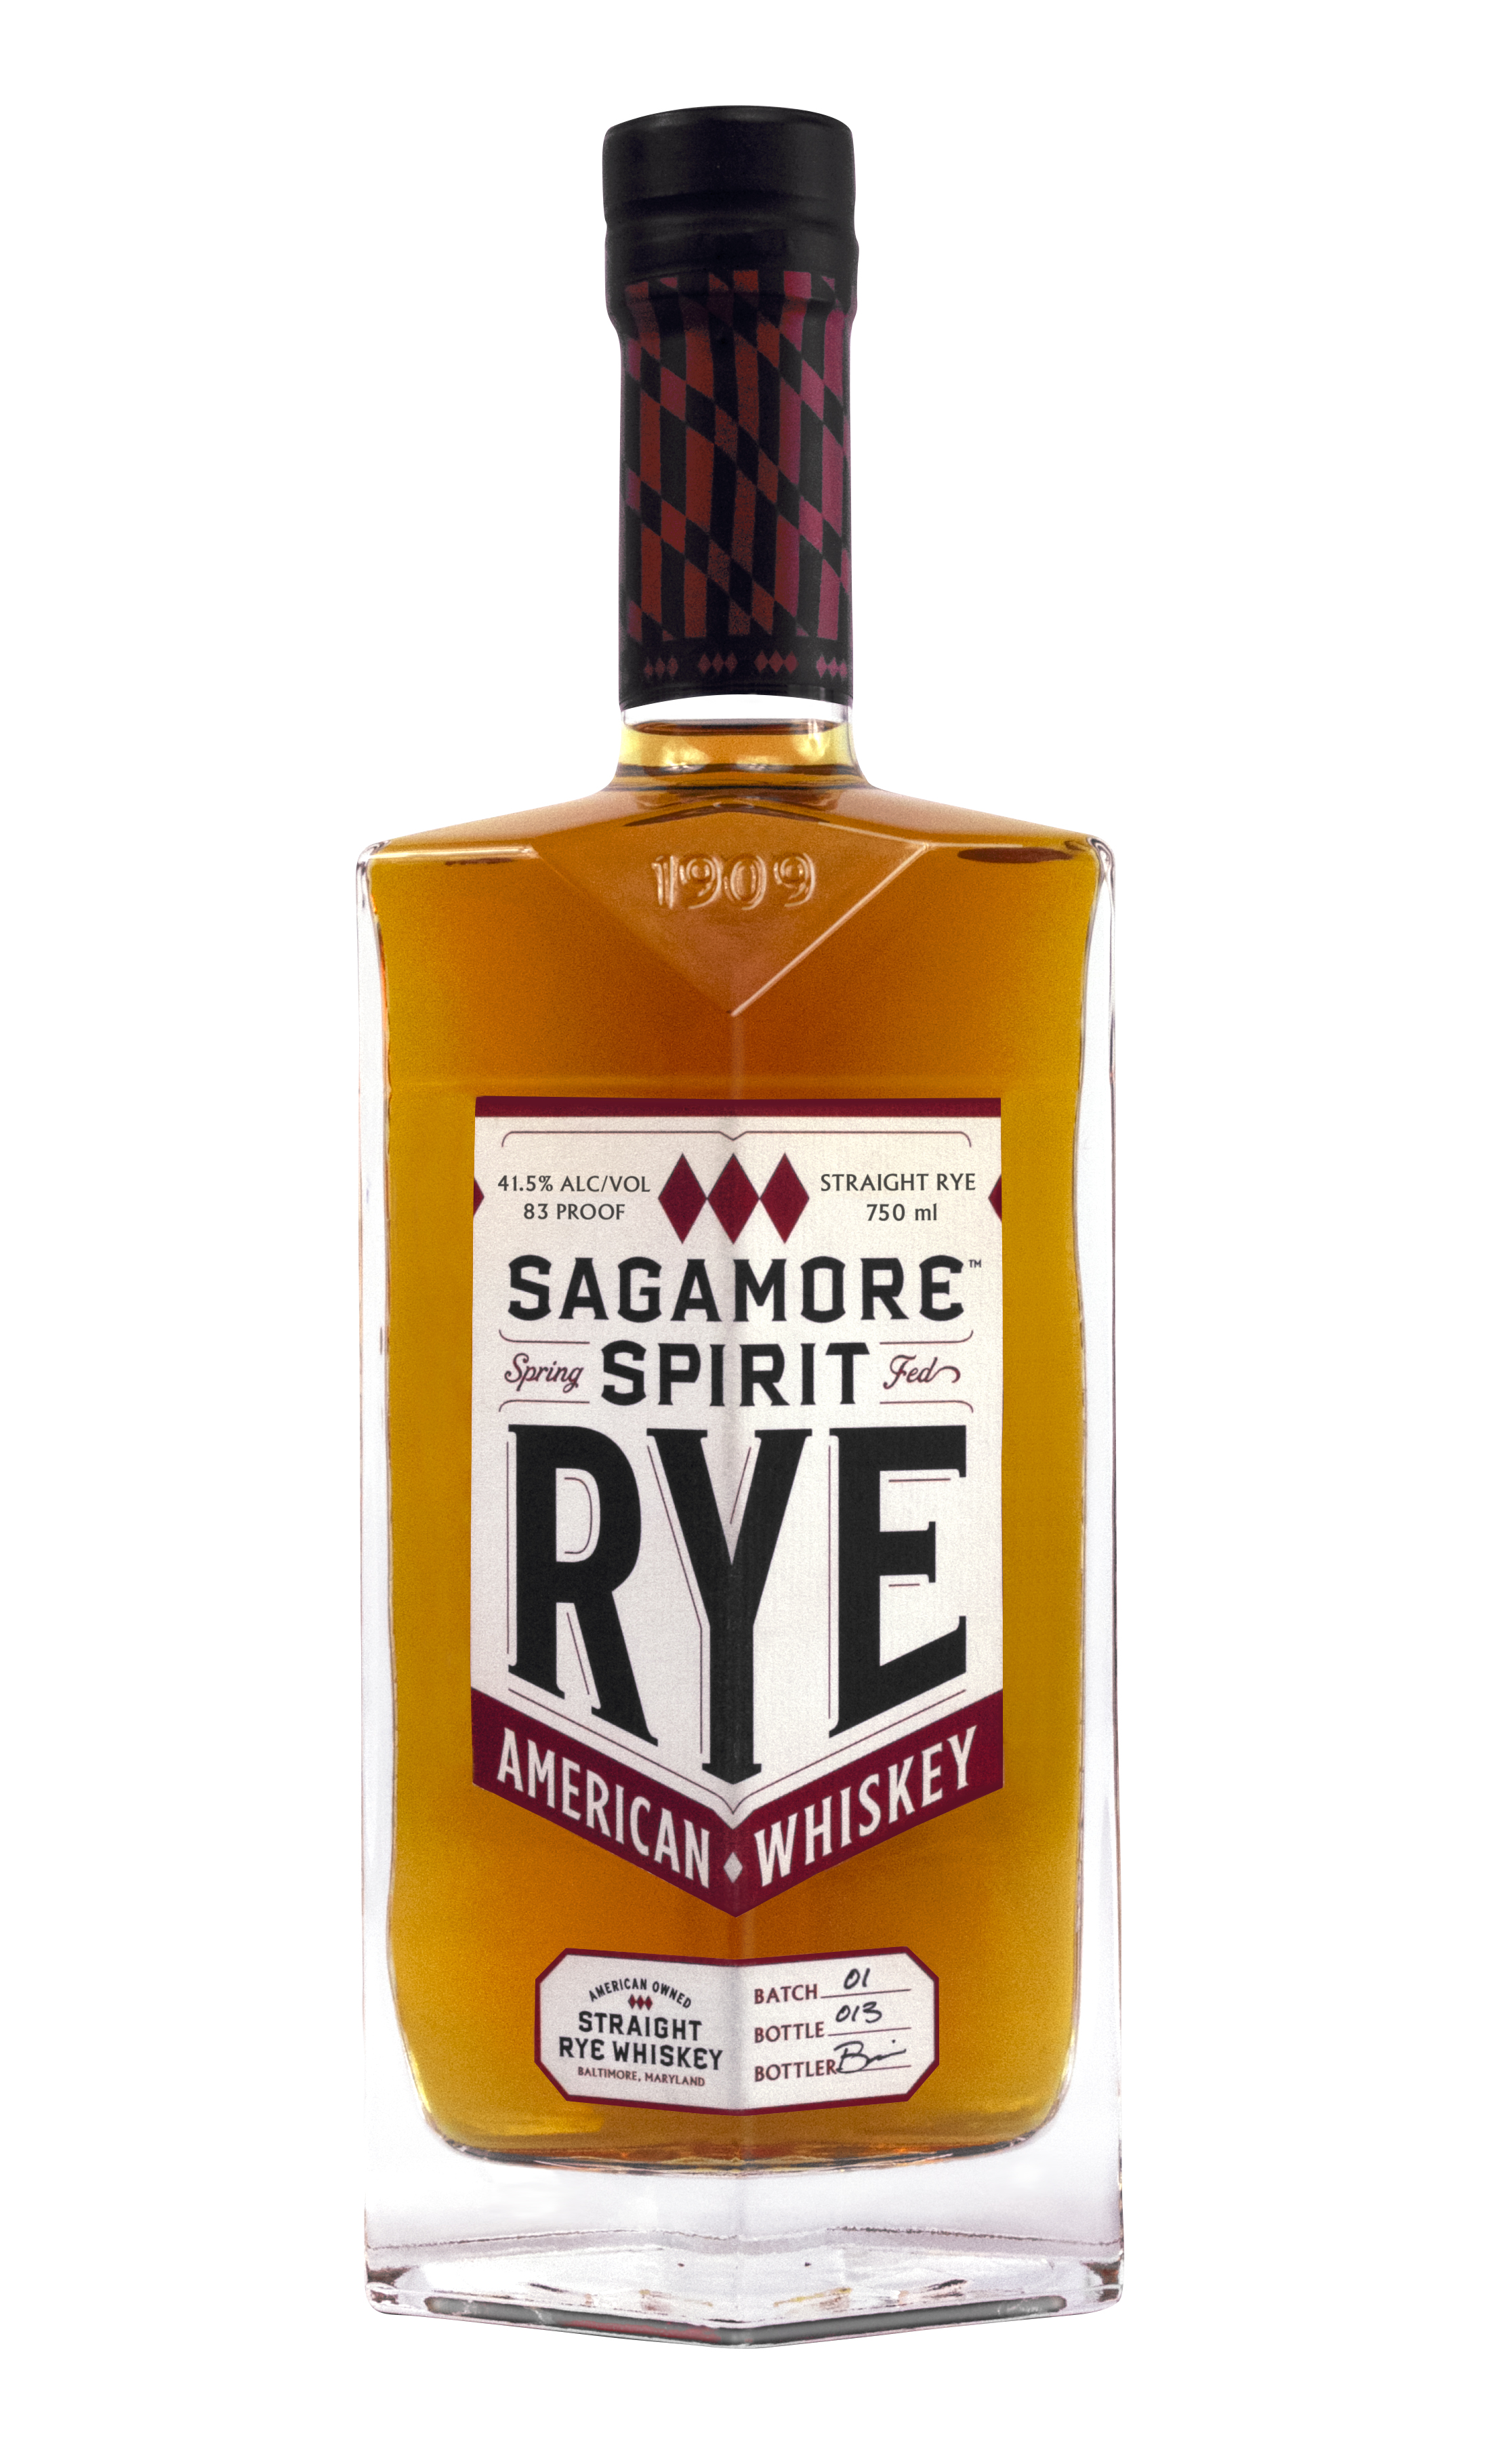 Sagamore Spirit Rye Whiskey makes its debut